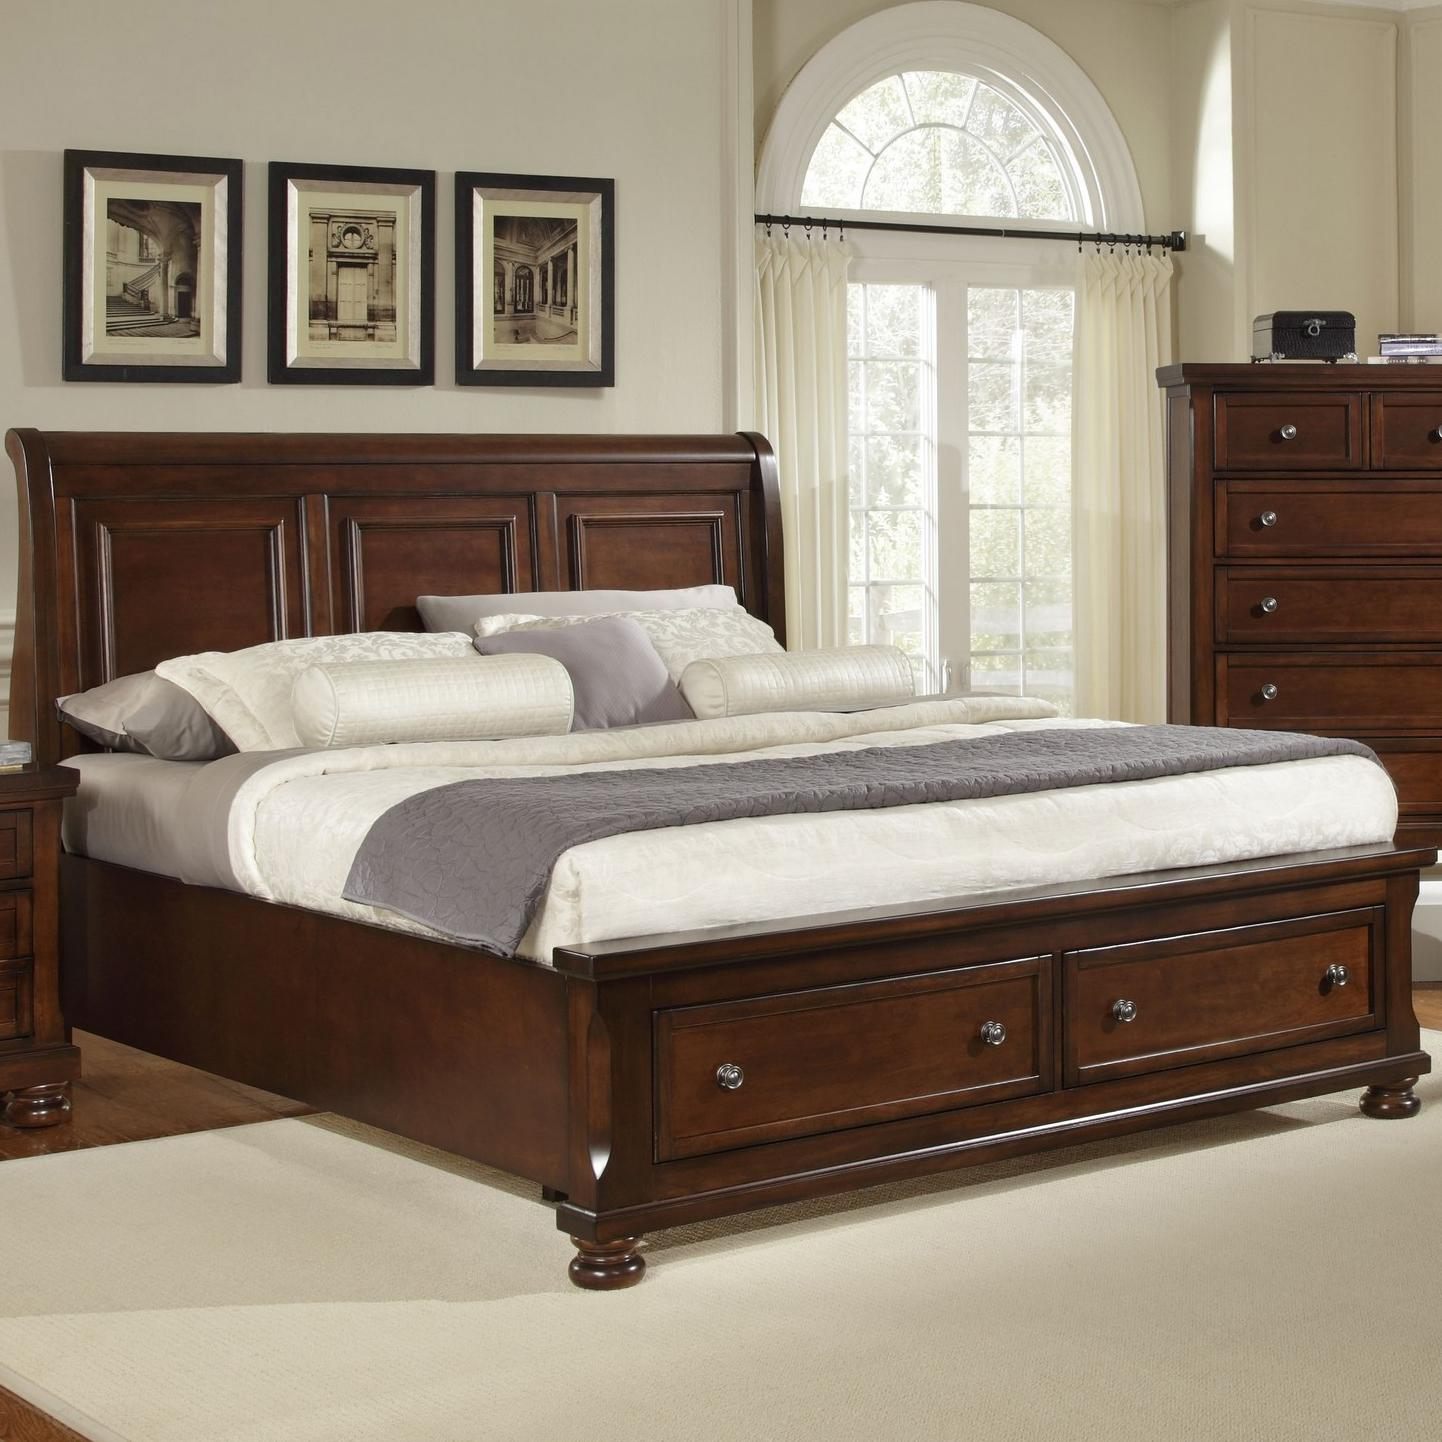 Low Bed Frames Canada King Storage Bed With Sleigh Headboard By Vaughan Bassett